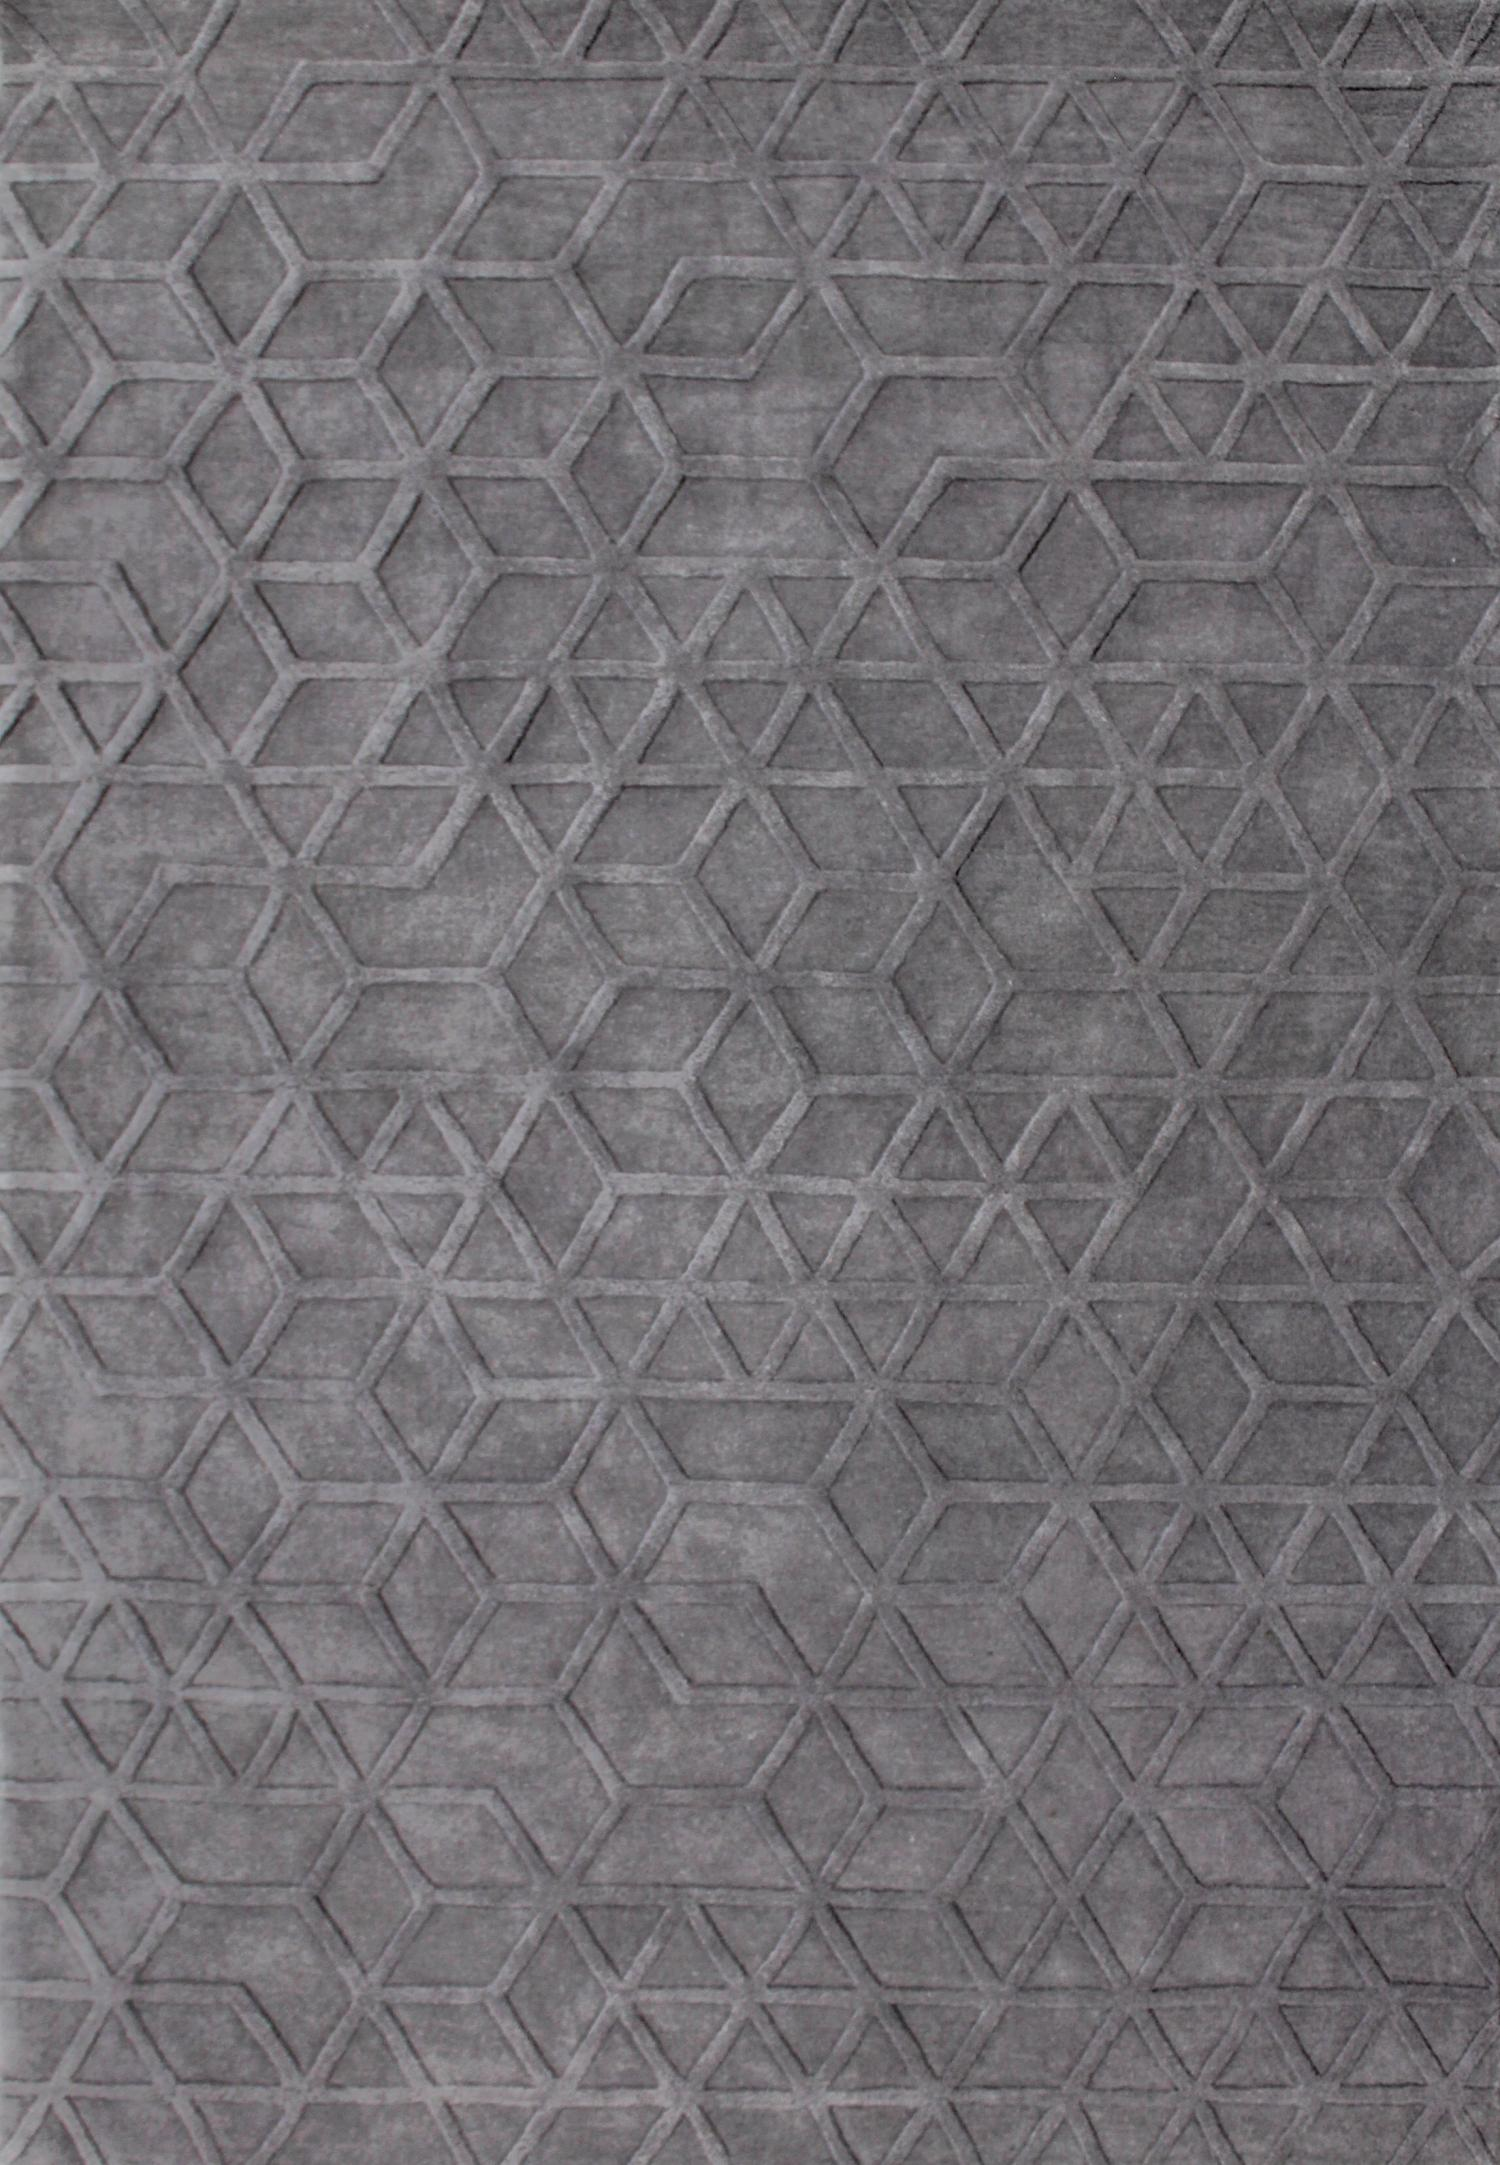 lima-grey-hand-tuffed-nz-wool-blend-textured-rugs-pattern-perth-stans